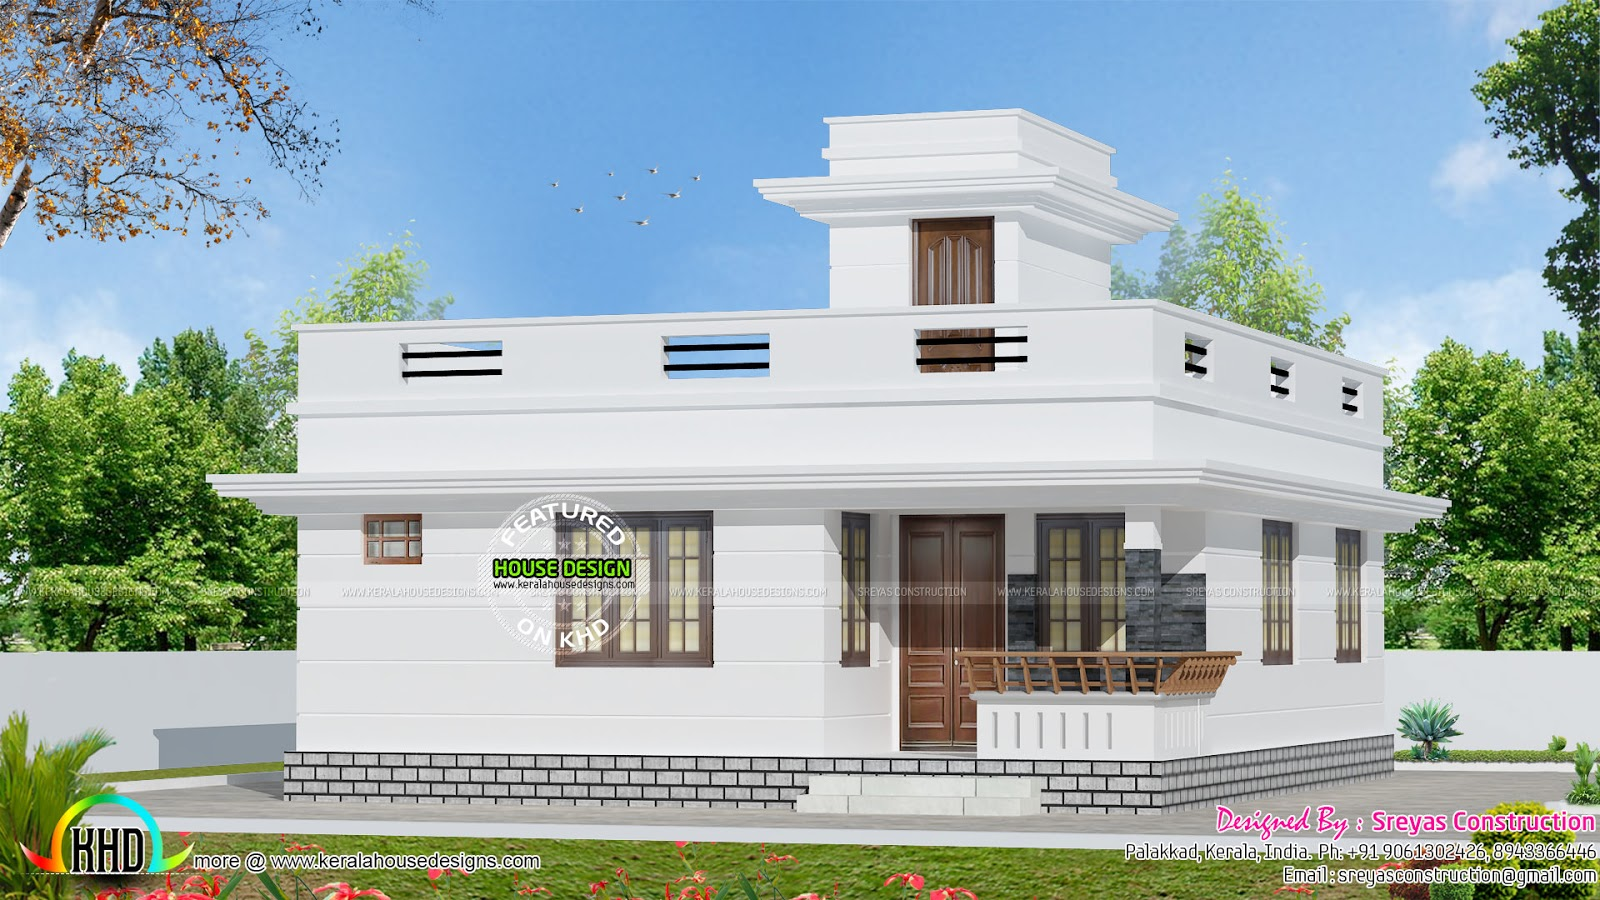 882 Sq Ft Small House Architecture Kerala Home Design